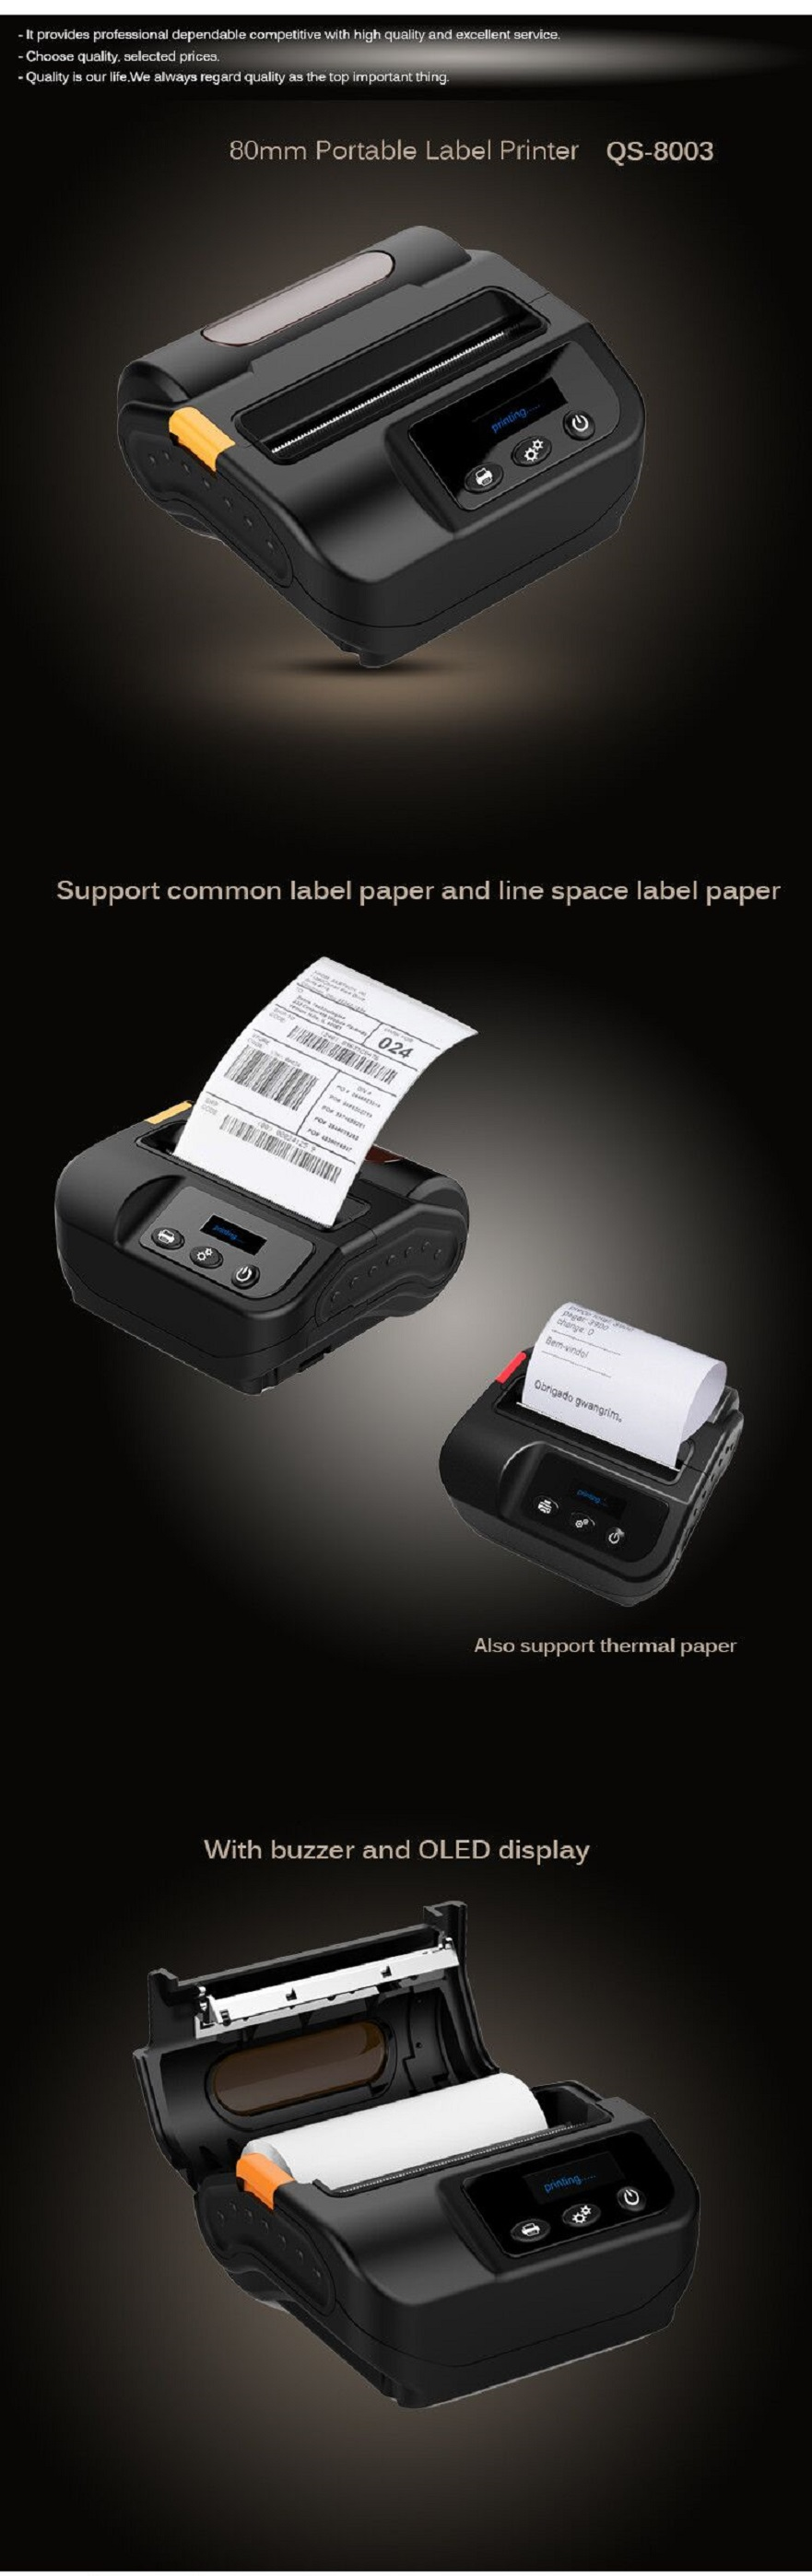 80mm thermal printer QS8003 120401 (1)